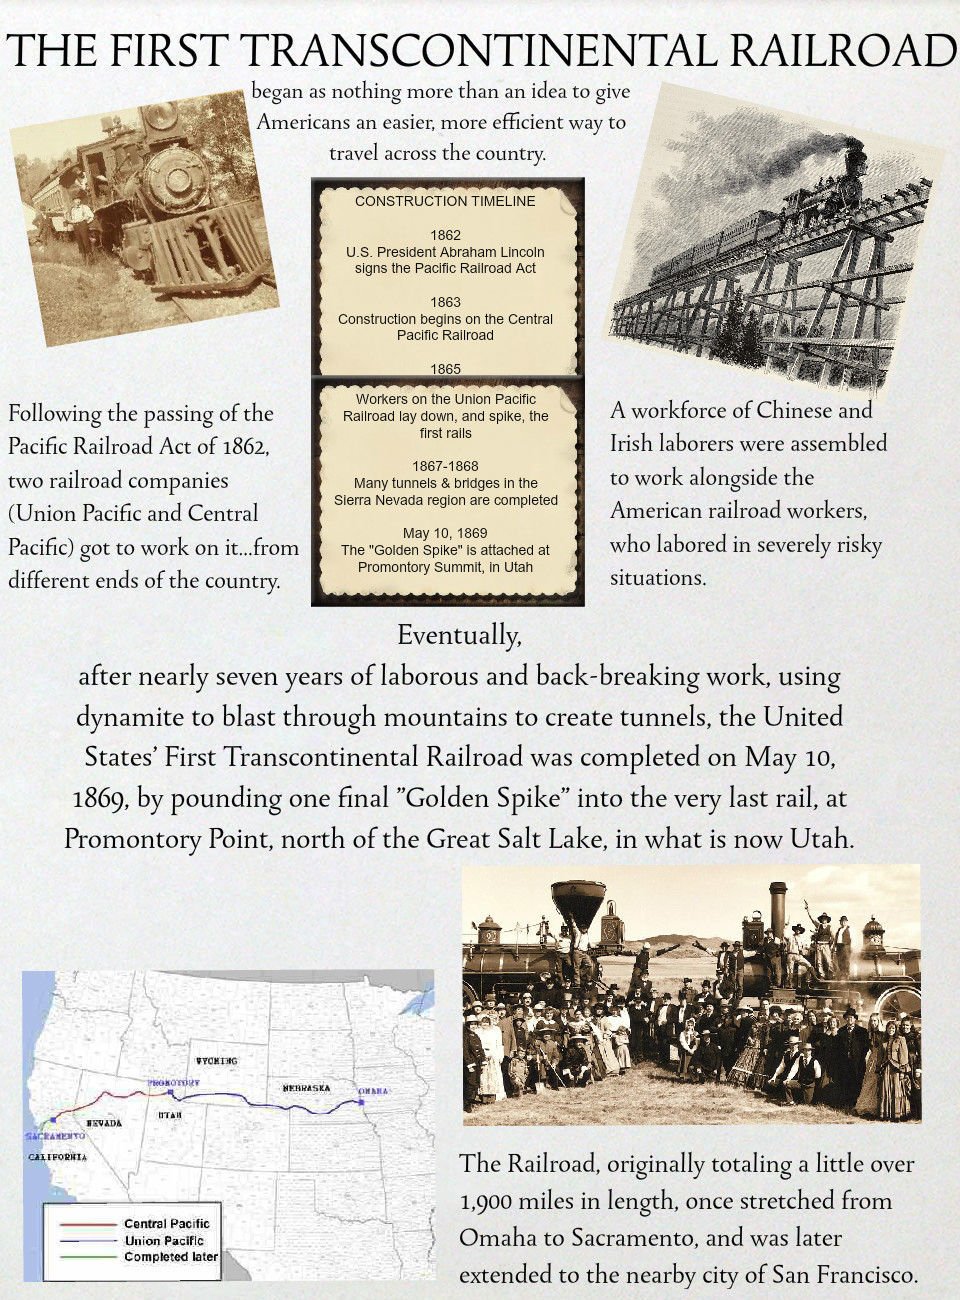 THE FIRST TRANSCONTINENTAL RAILROAD: text, images, music